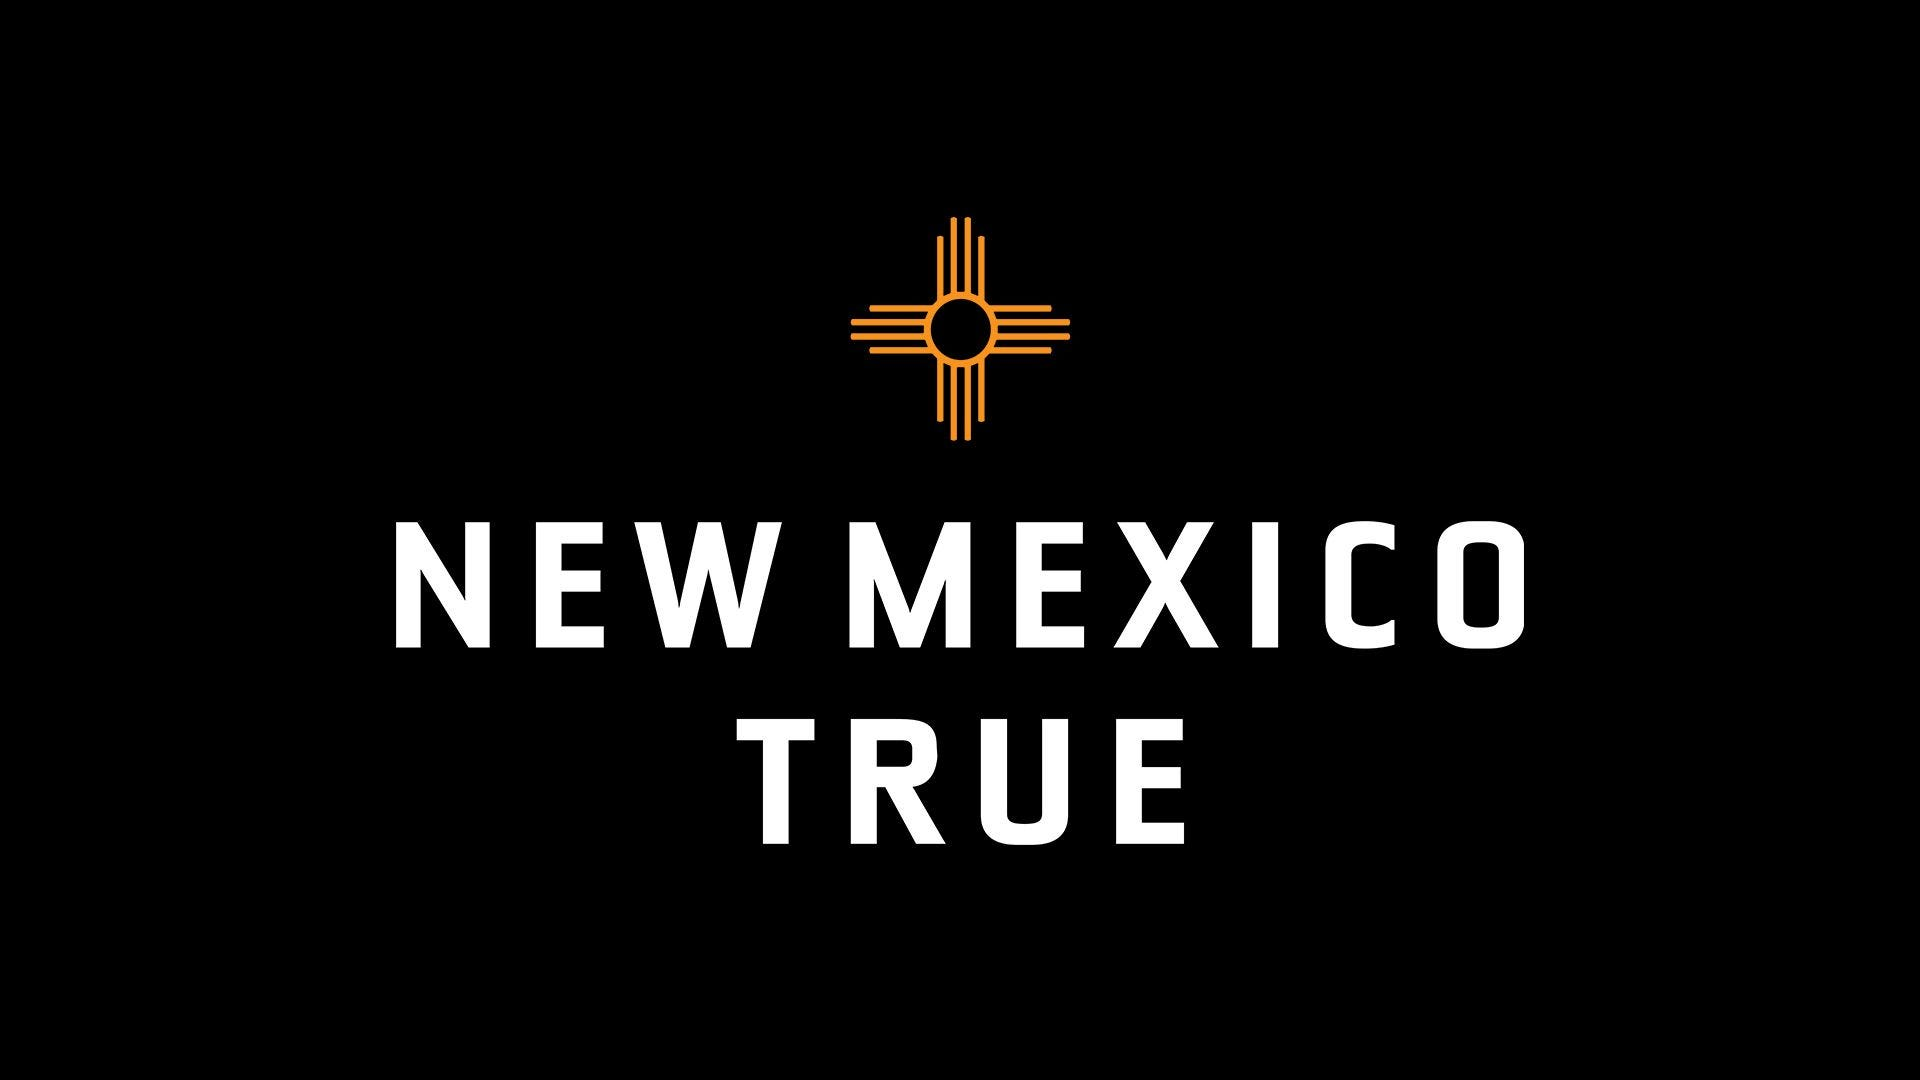 """State officials unveiled the new """"New Mexico True"""" logo on Tuesday, April 13, 2021."""